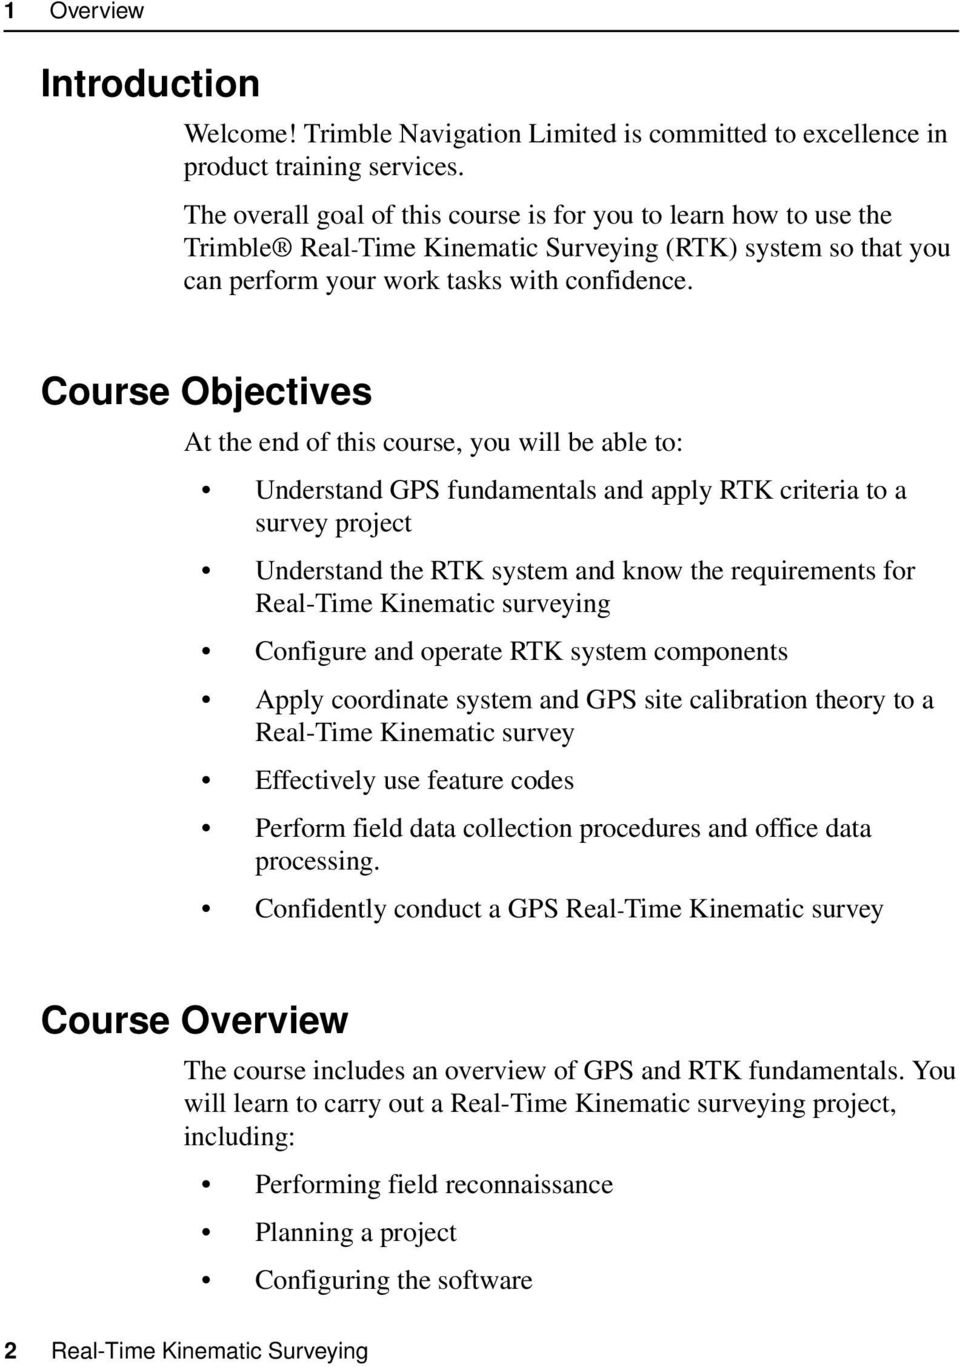 Real-Time Kinematic Surveying - PDF